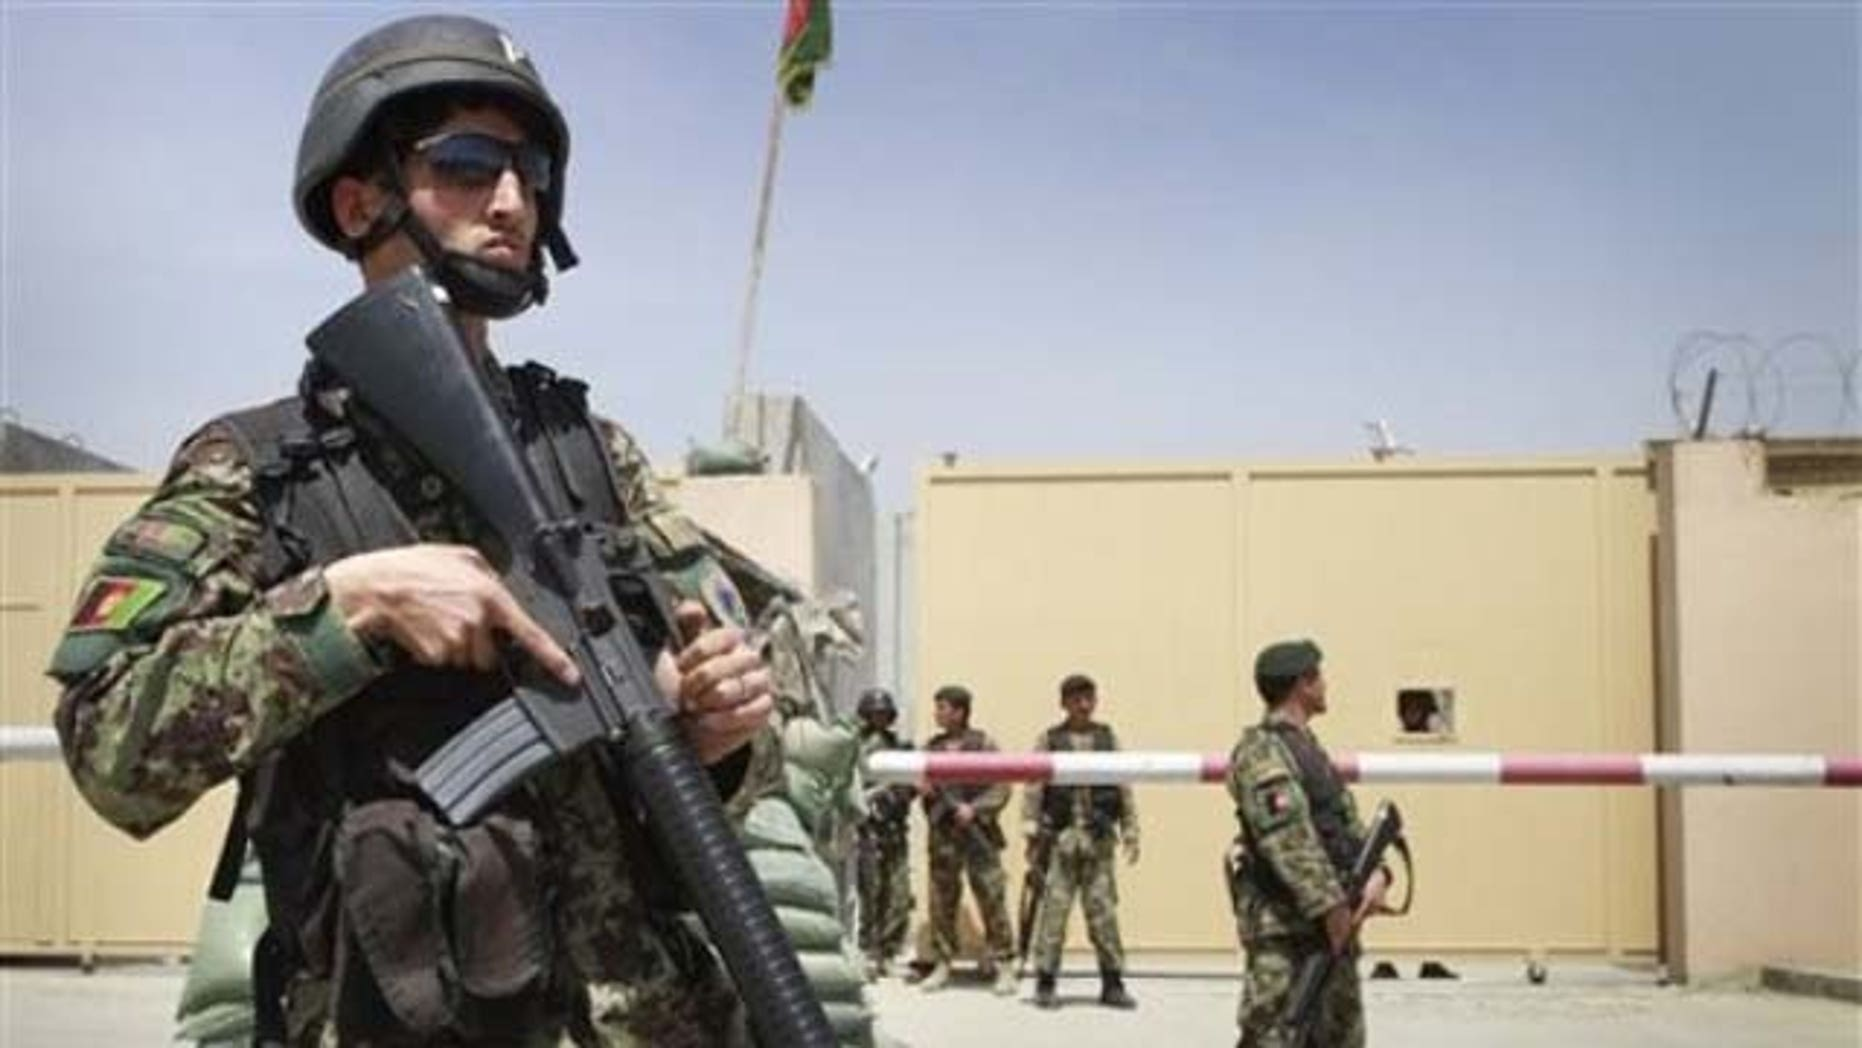 Afghan soldiers stand guard outside an airport gate in Kabul on April 27, 2011, after Col. Ahmed Gul killed 9 Americans.